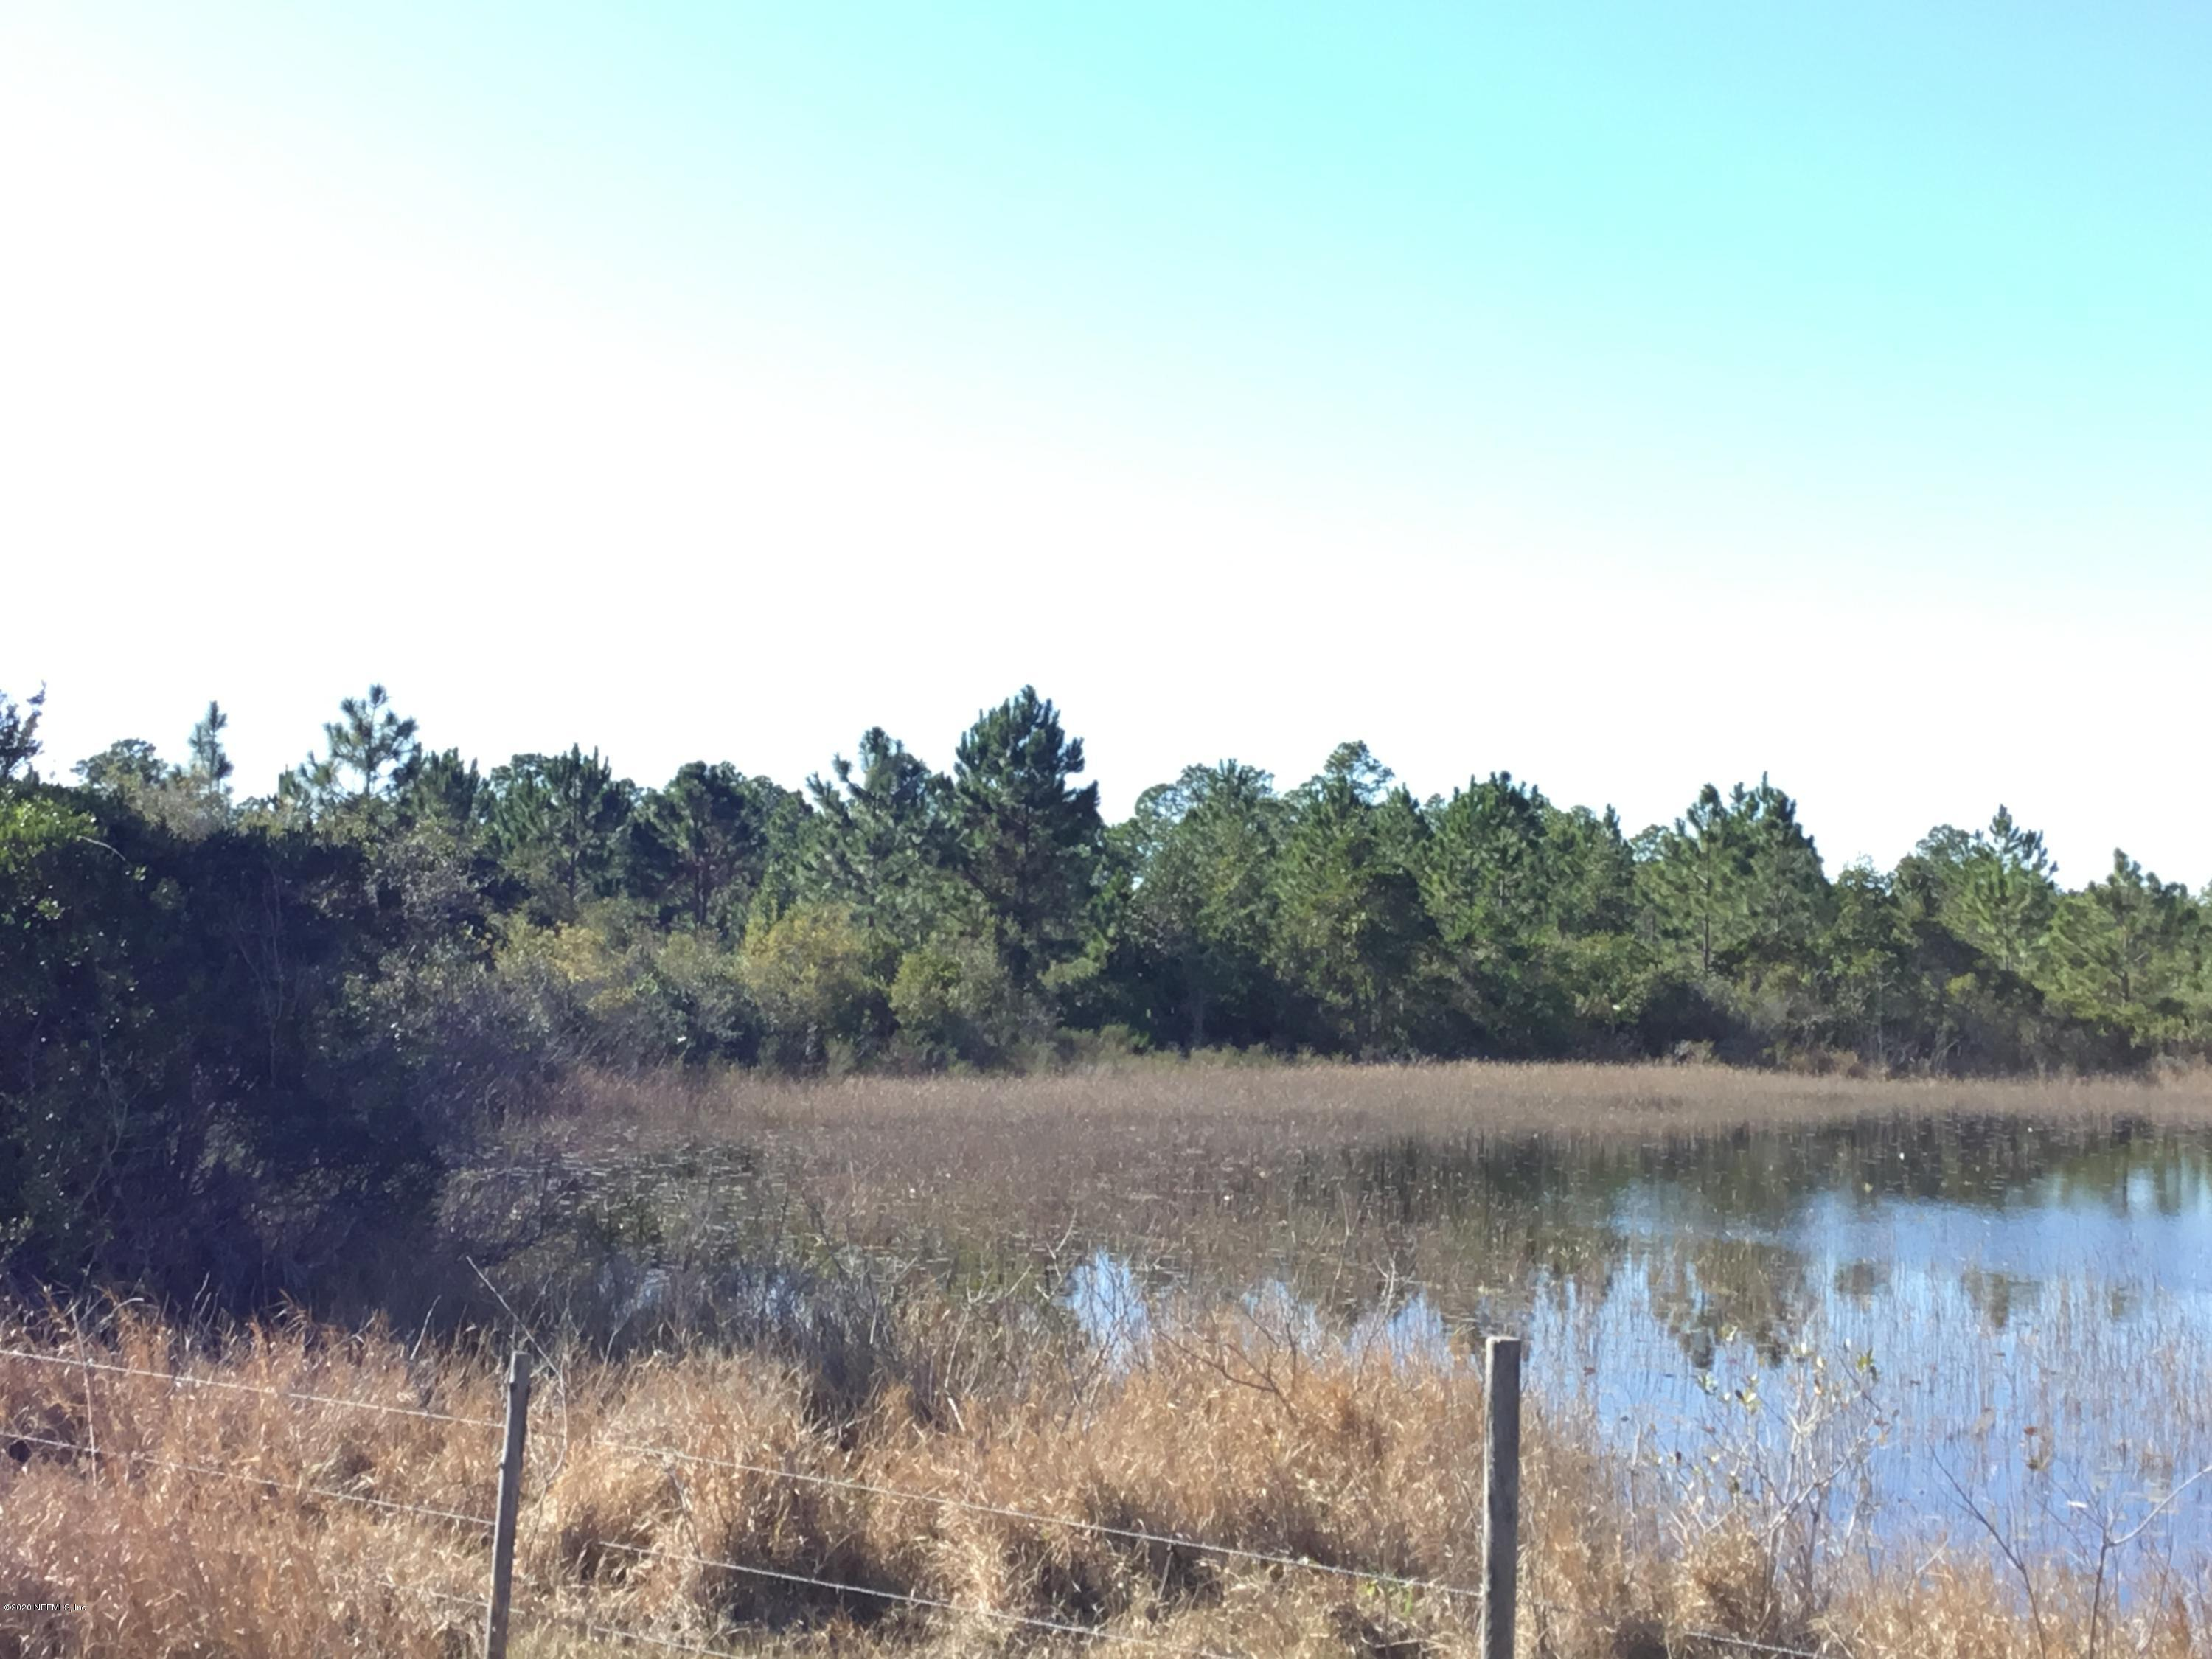 139 GEORGETOWN SHORTCUT-LOT 1, CRESCENT CITY, FLORIDA 32112, ,Vacant land,For sale,GEORGETOWN SHORTCUT-LOT 1,1035706